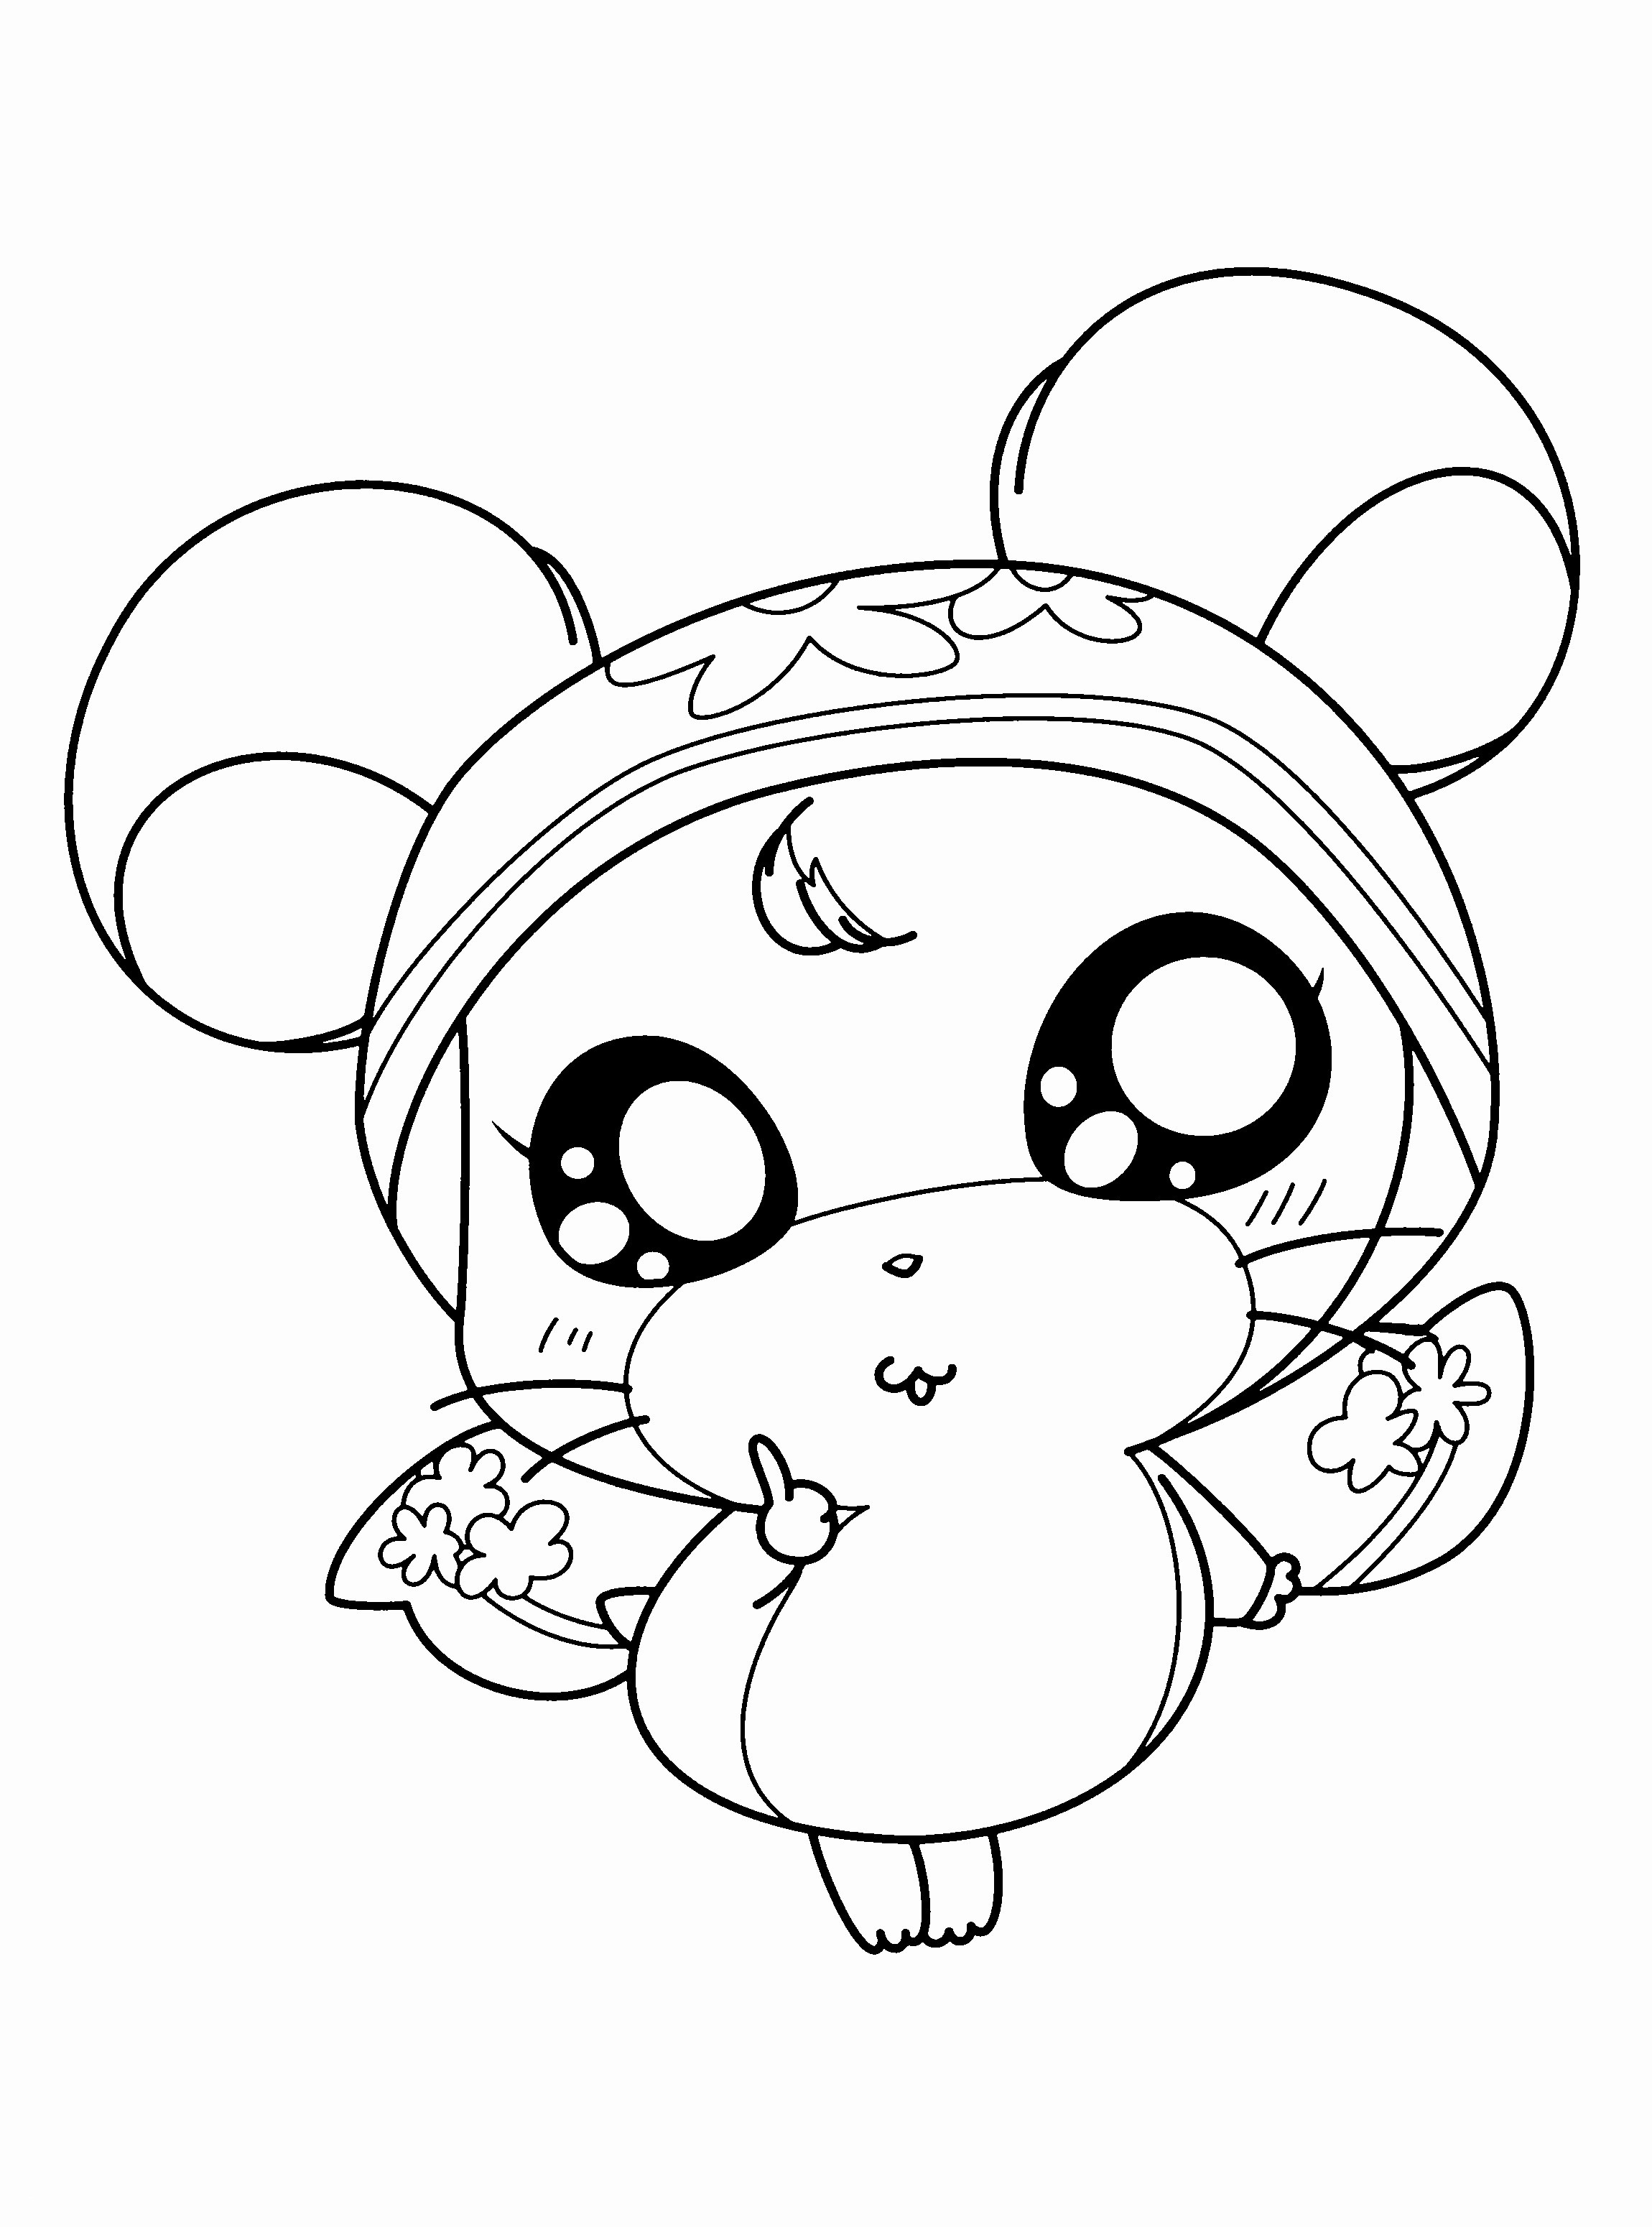 Parrot Coloring Pages  Gallery 10t - Free For Children